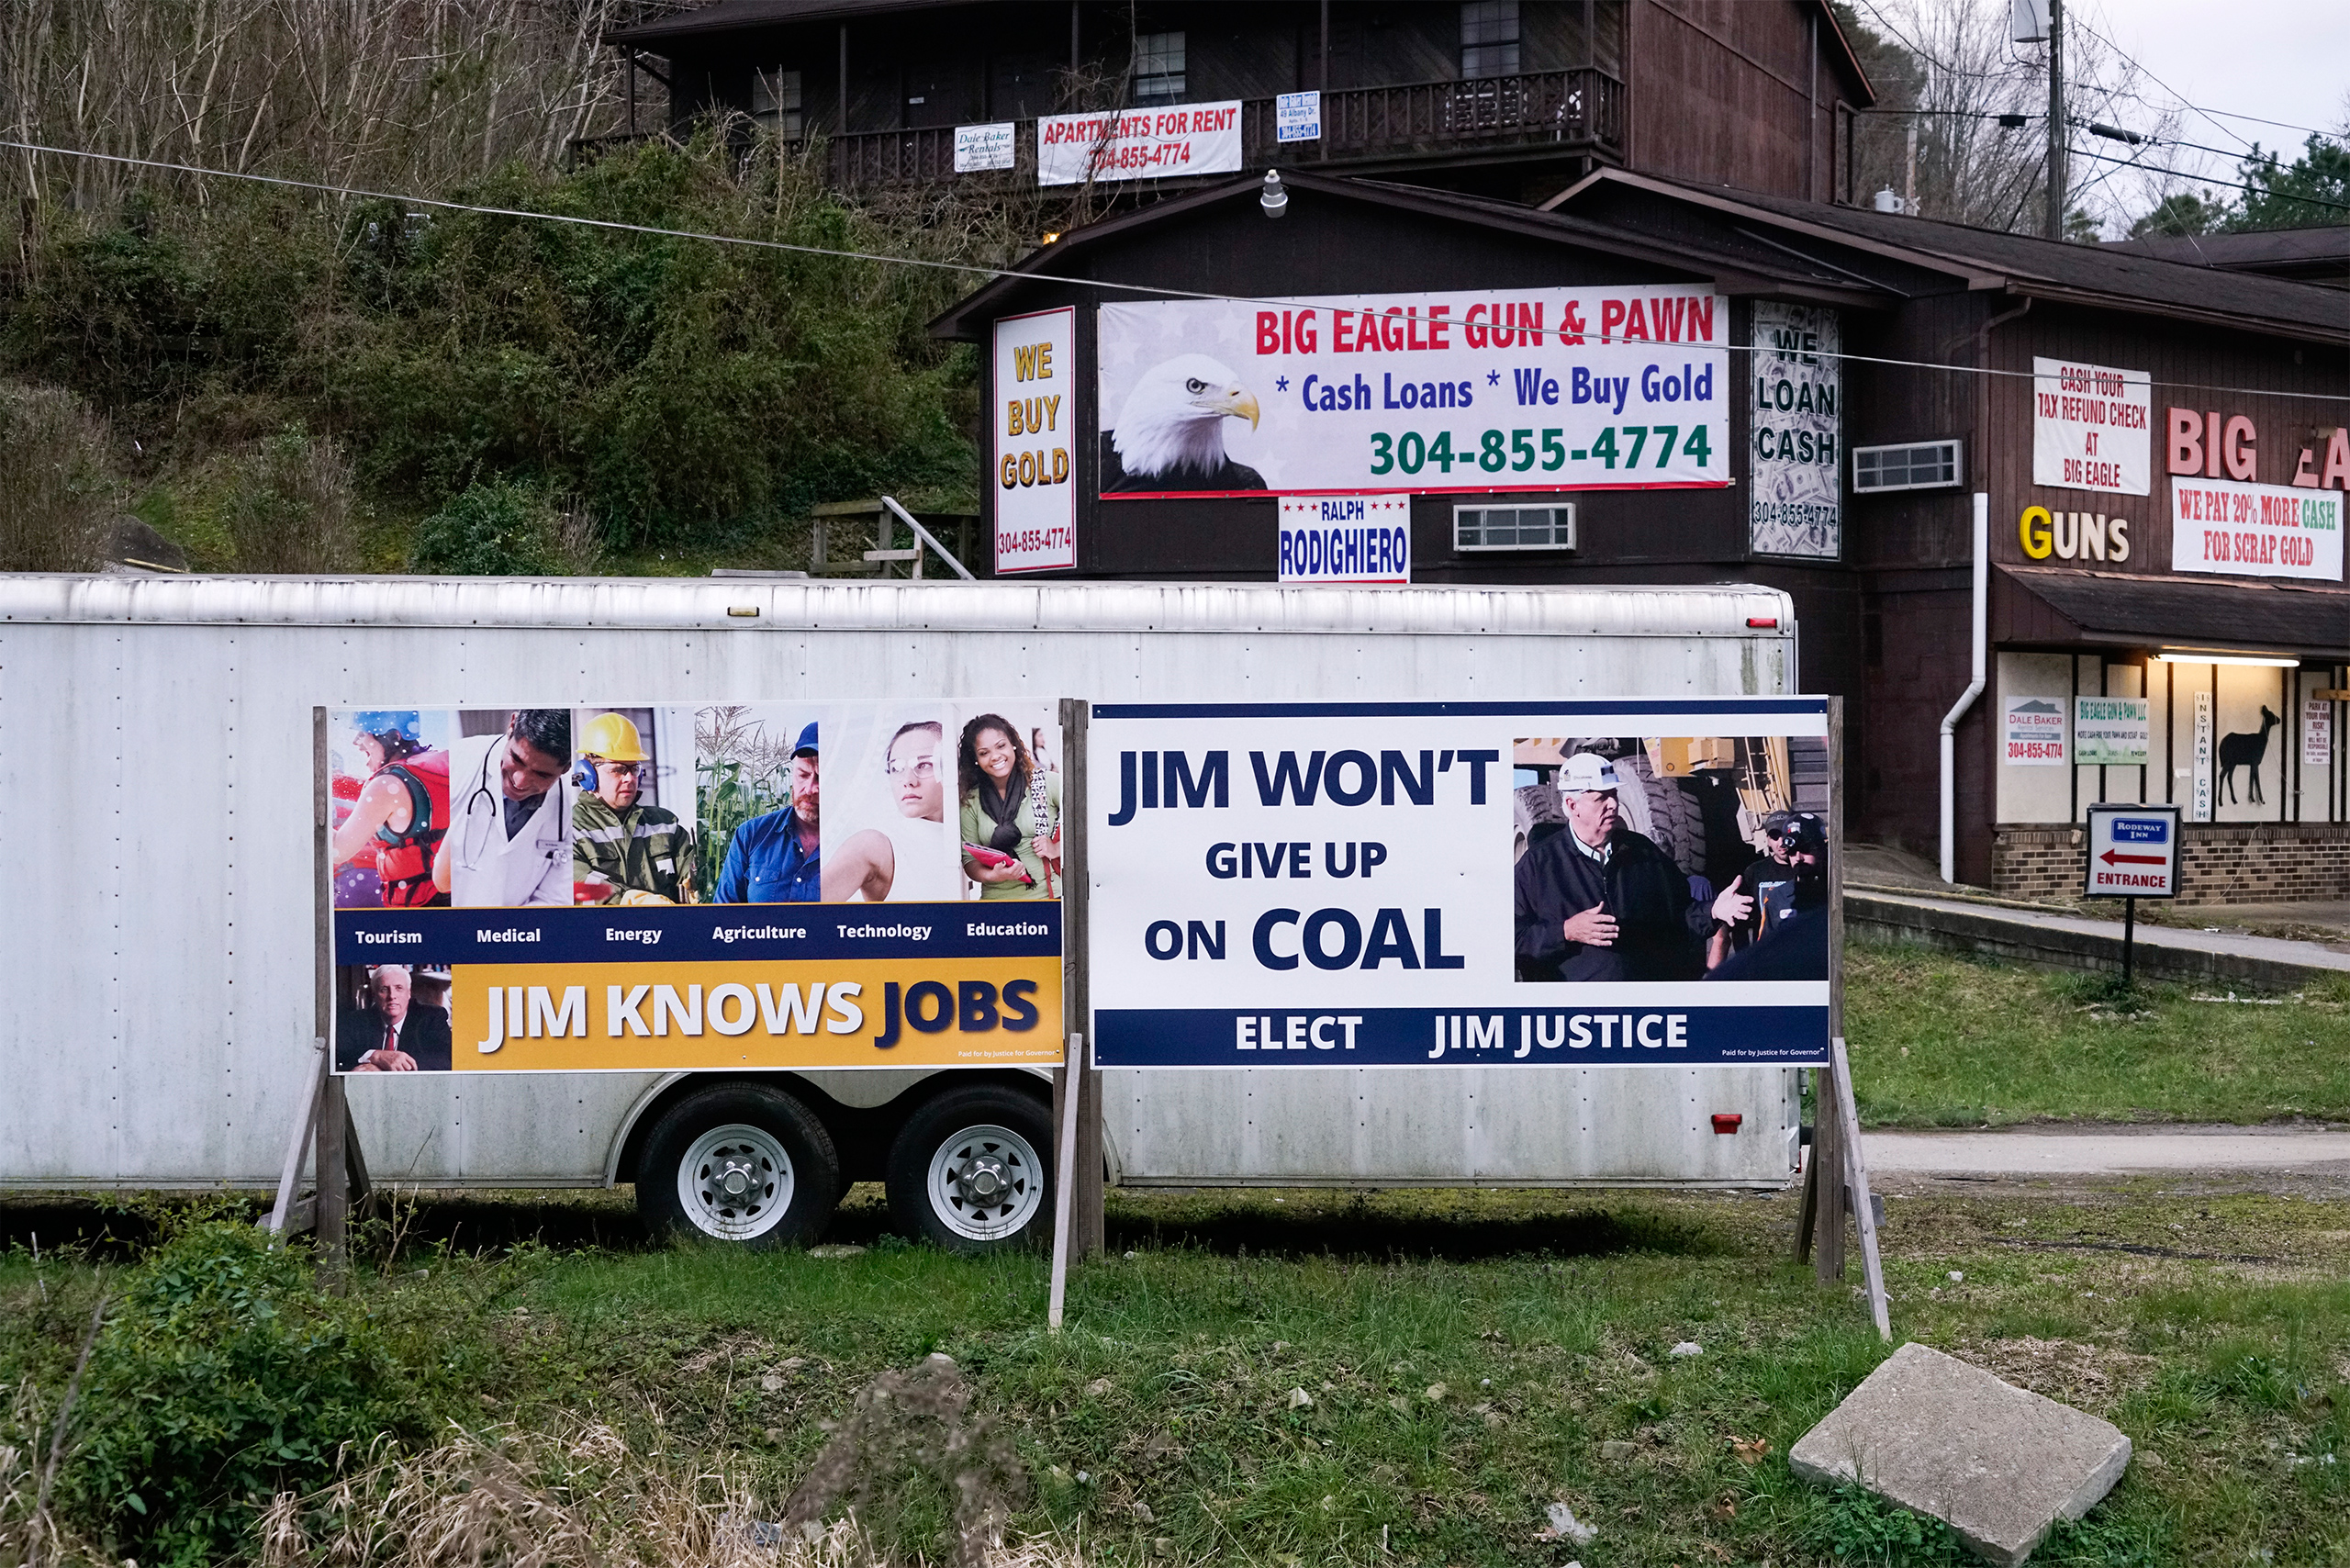 Election posters for Jim Justice (now Governor of West Virginia) appear in Chapmanville, W.Va., on Mar. 18, 2017.